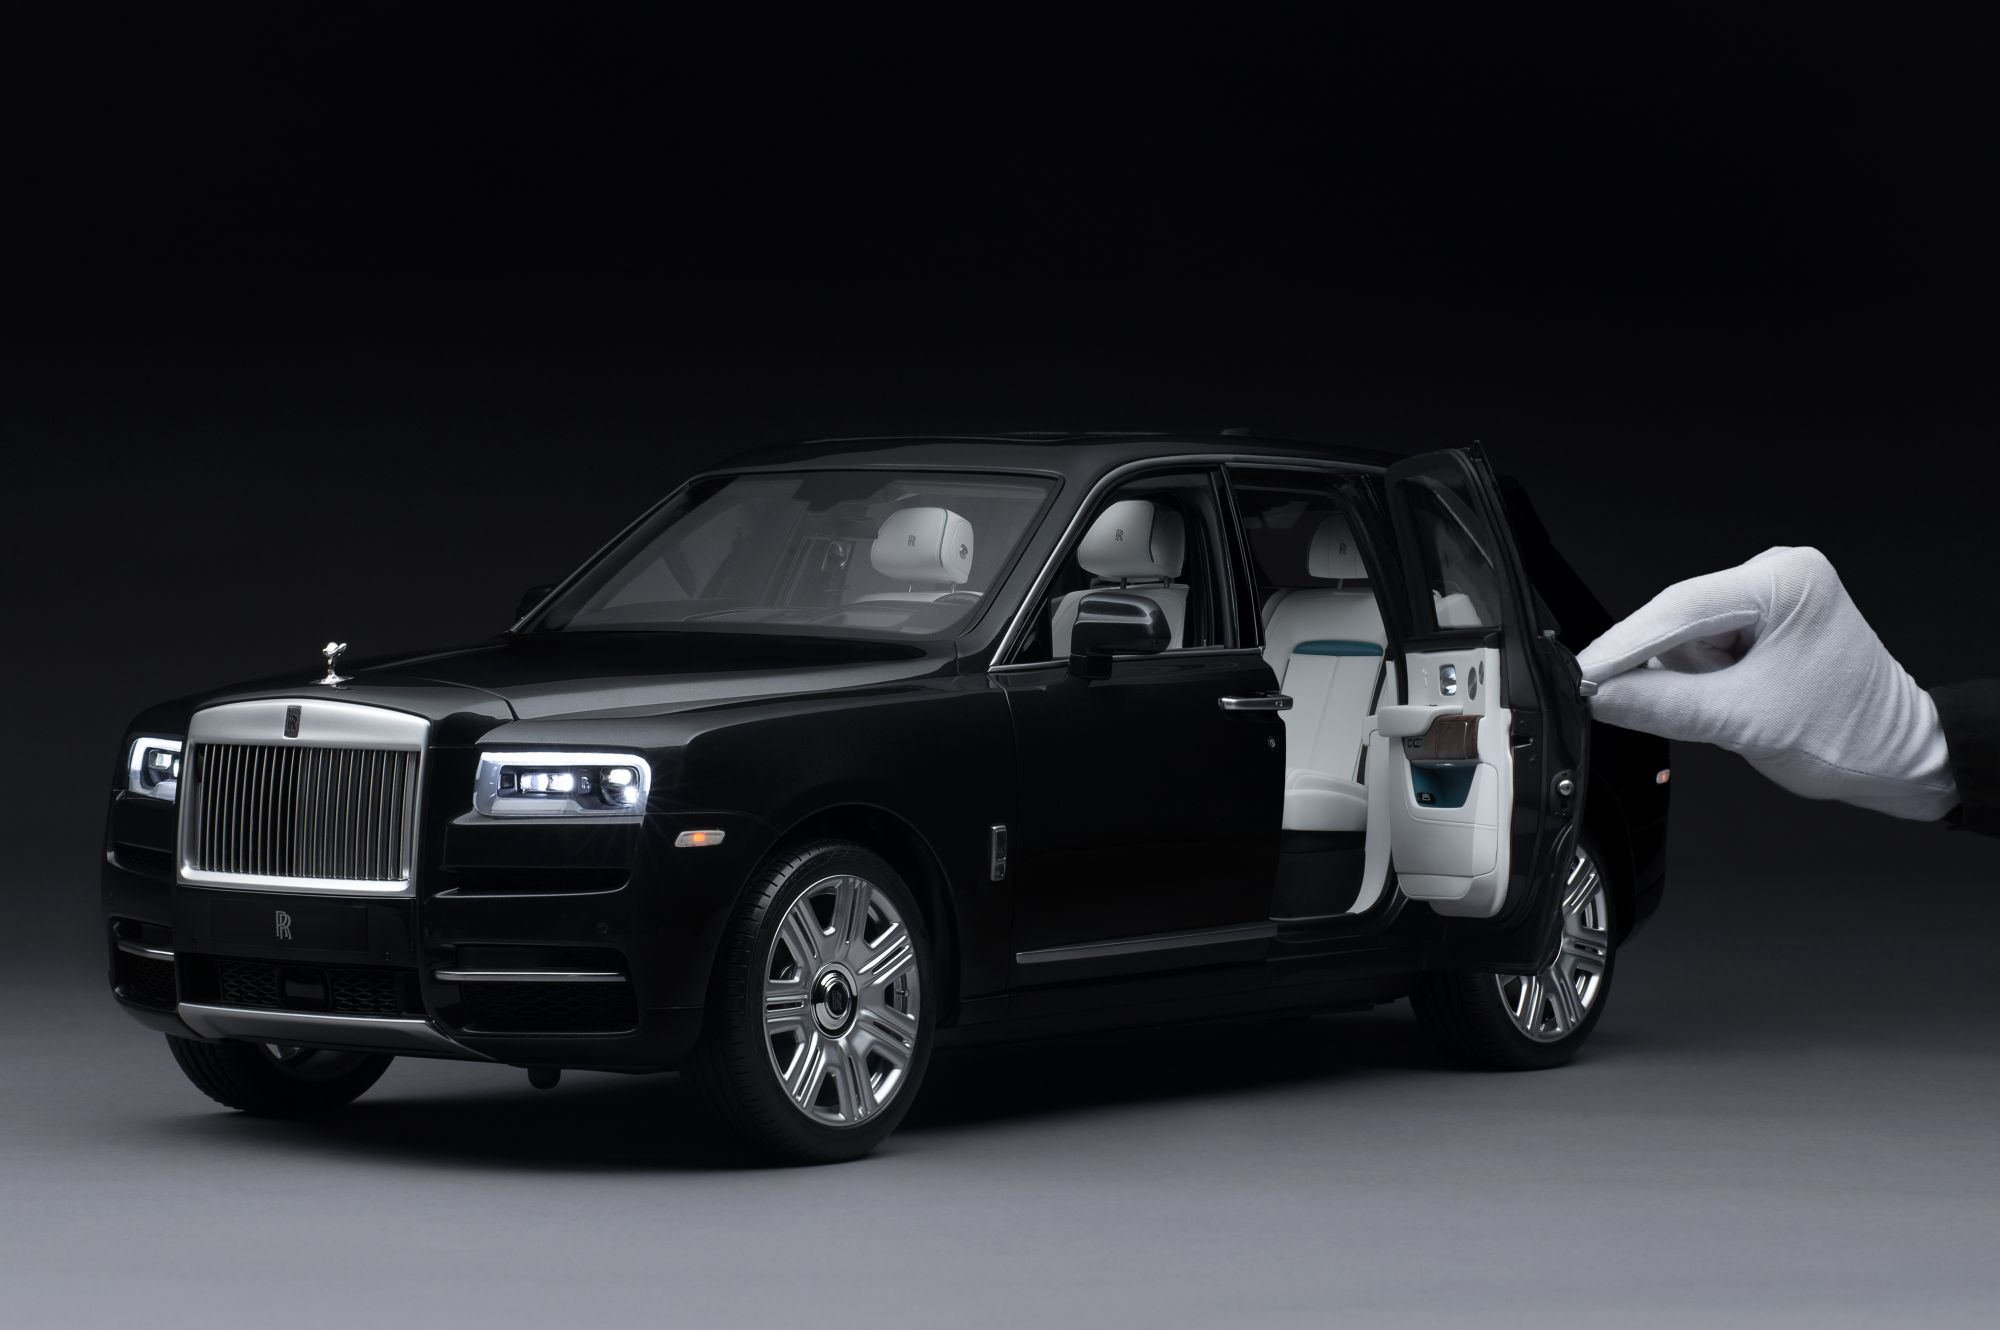 This Rolls-Royce Cullinan SUV Miniature Replica Features LED lights And A Branded Remote—And Costs US$27,000